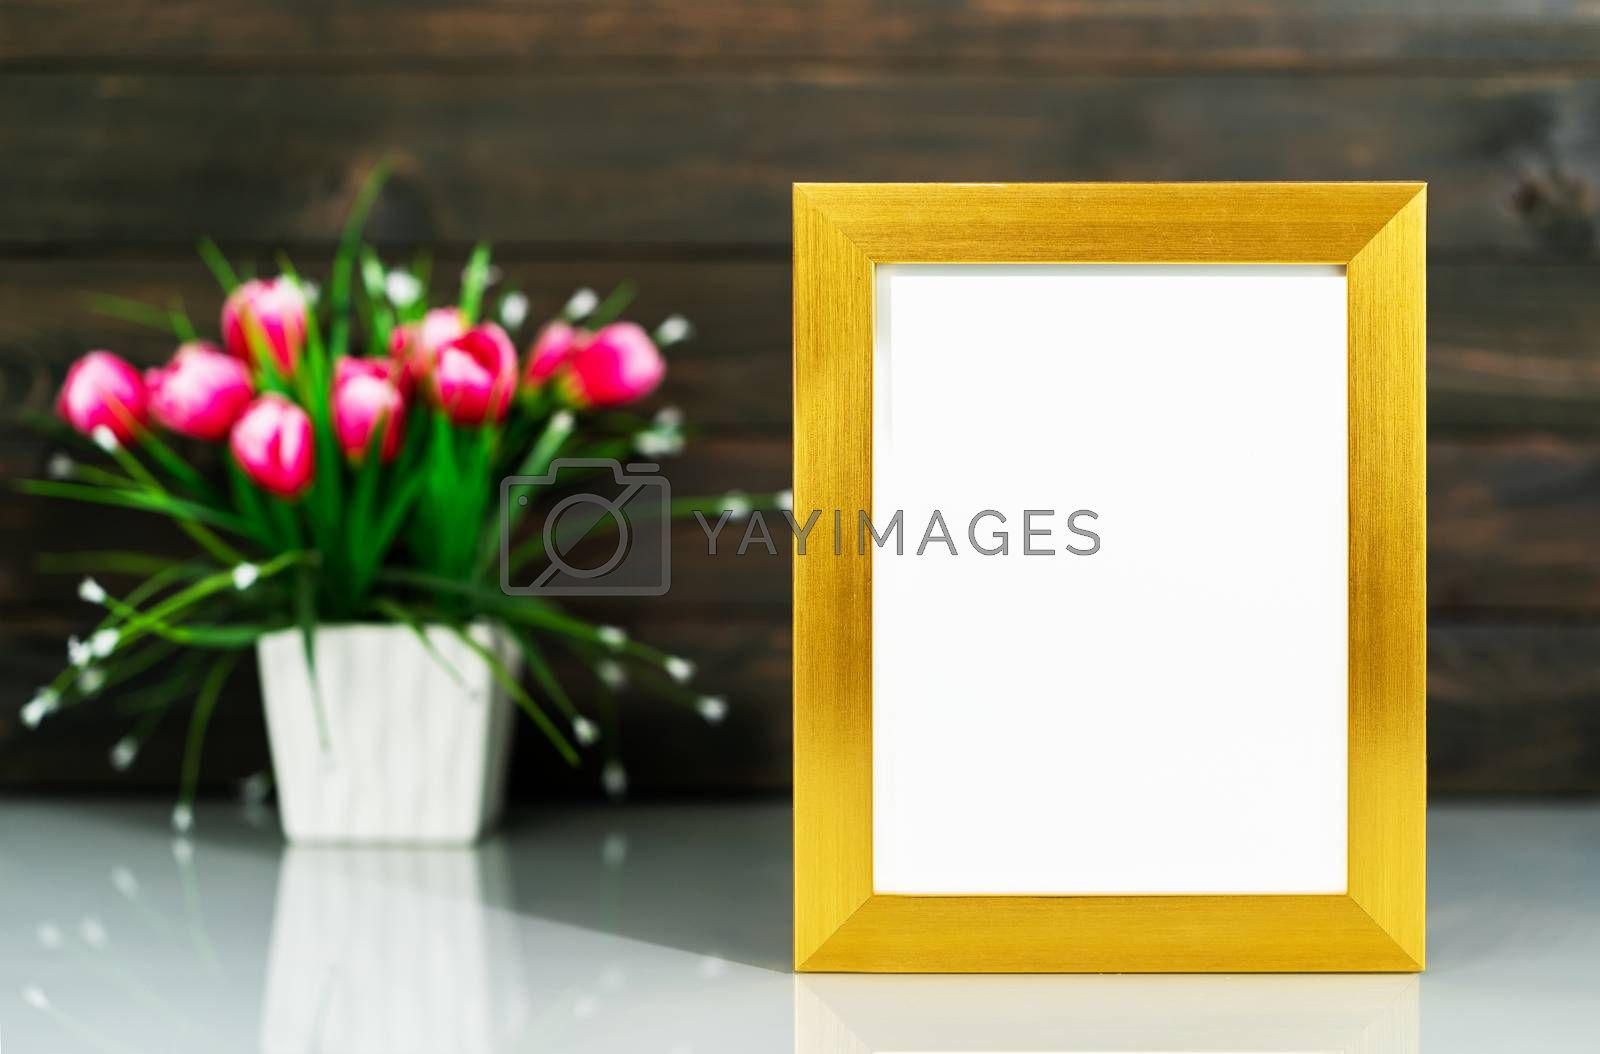 Picture mock up with golden frame and Artificial flower vase bouquet over table with wood wall background